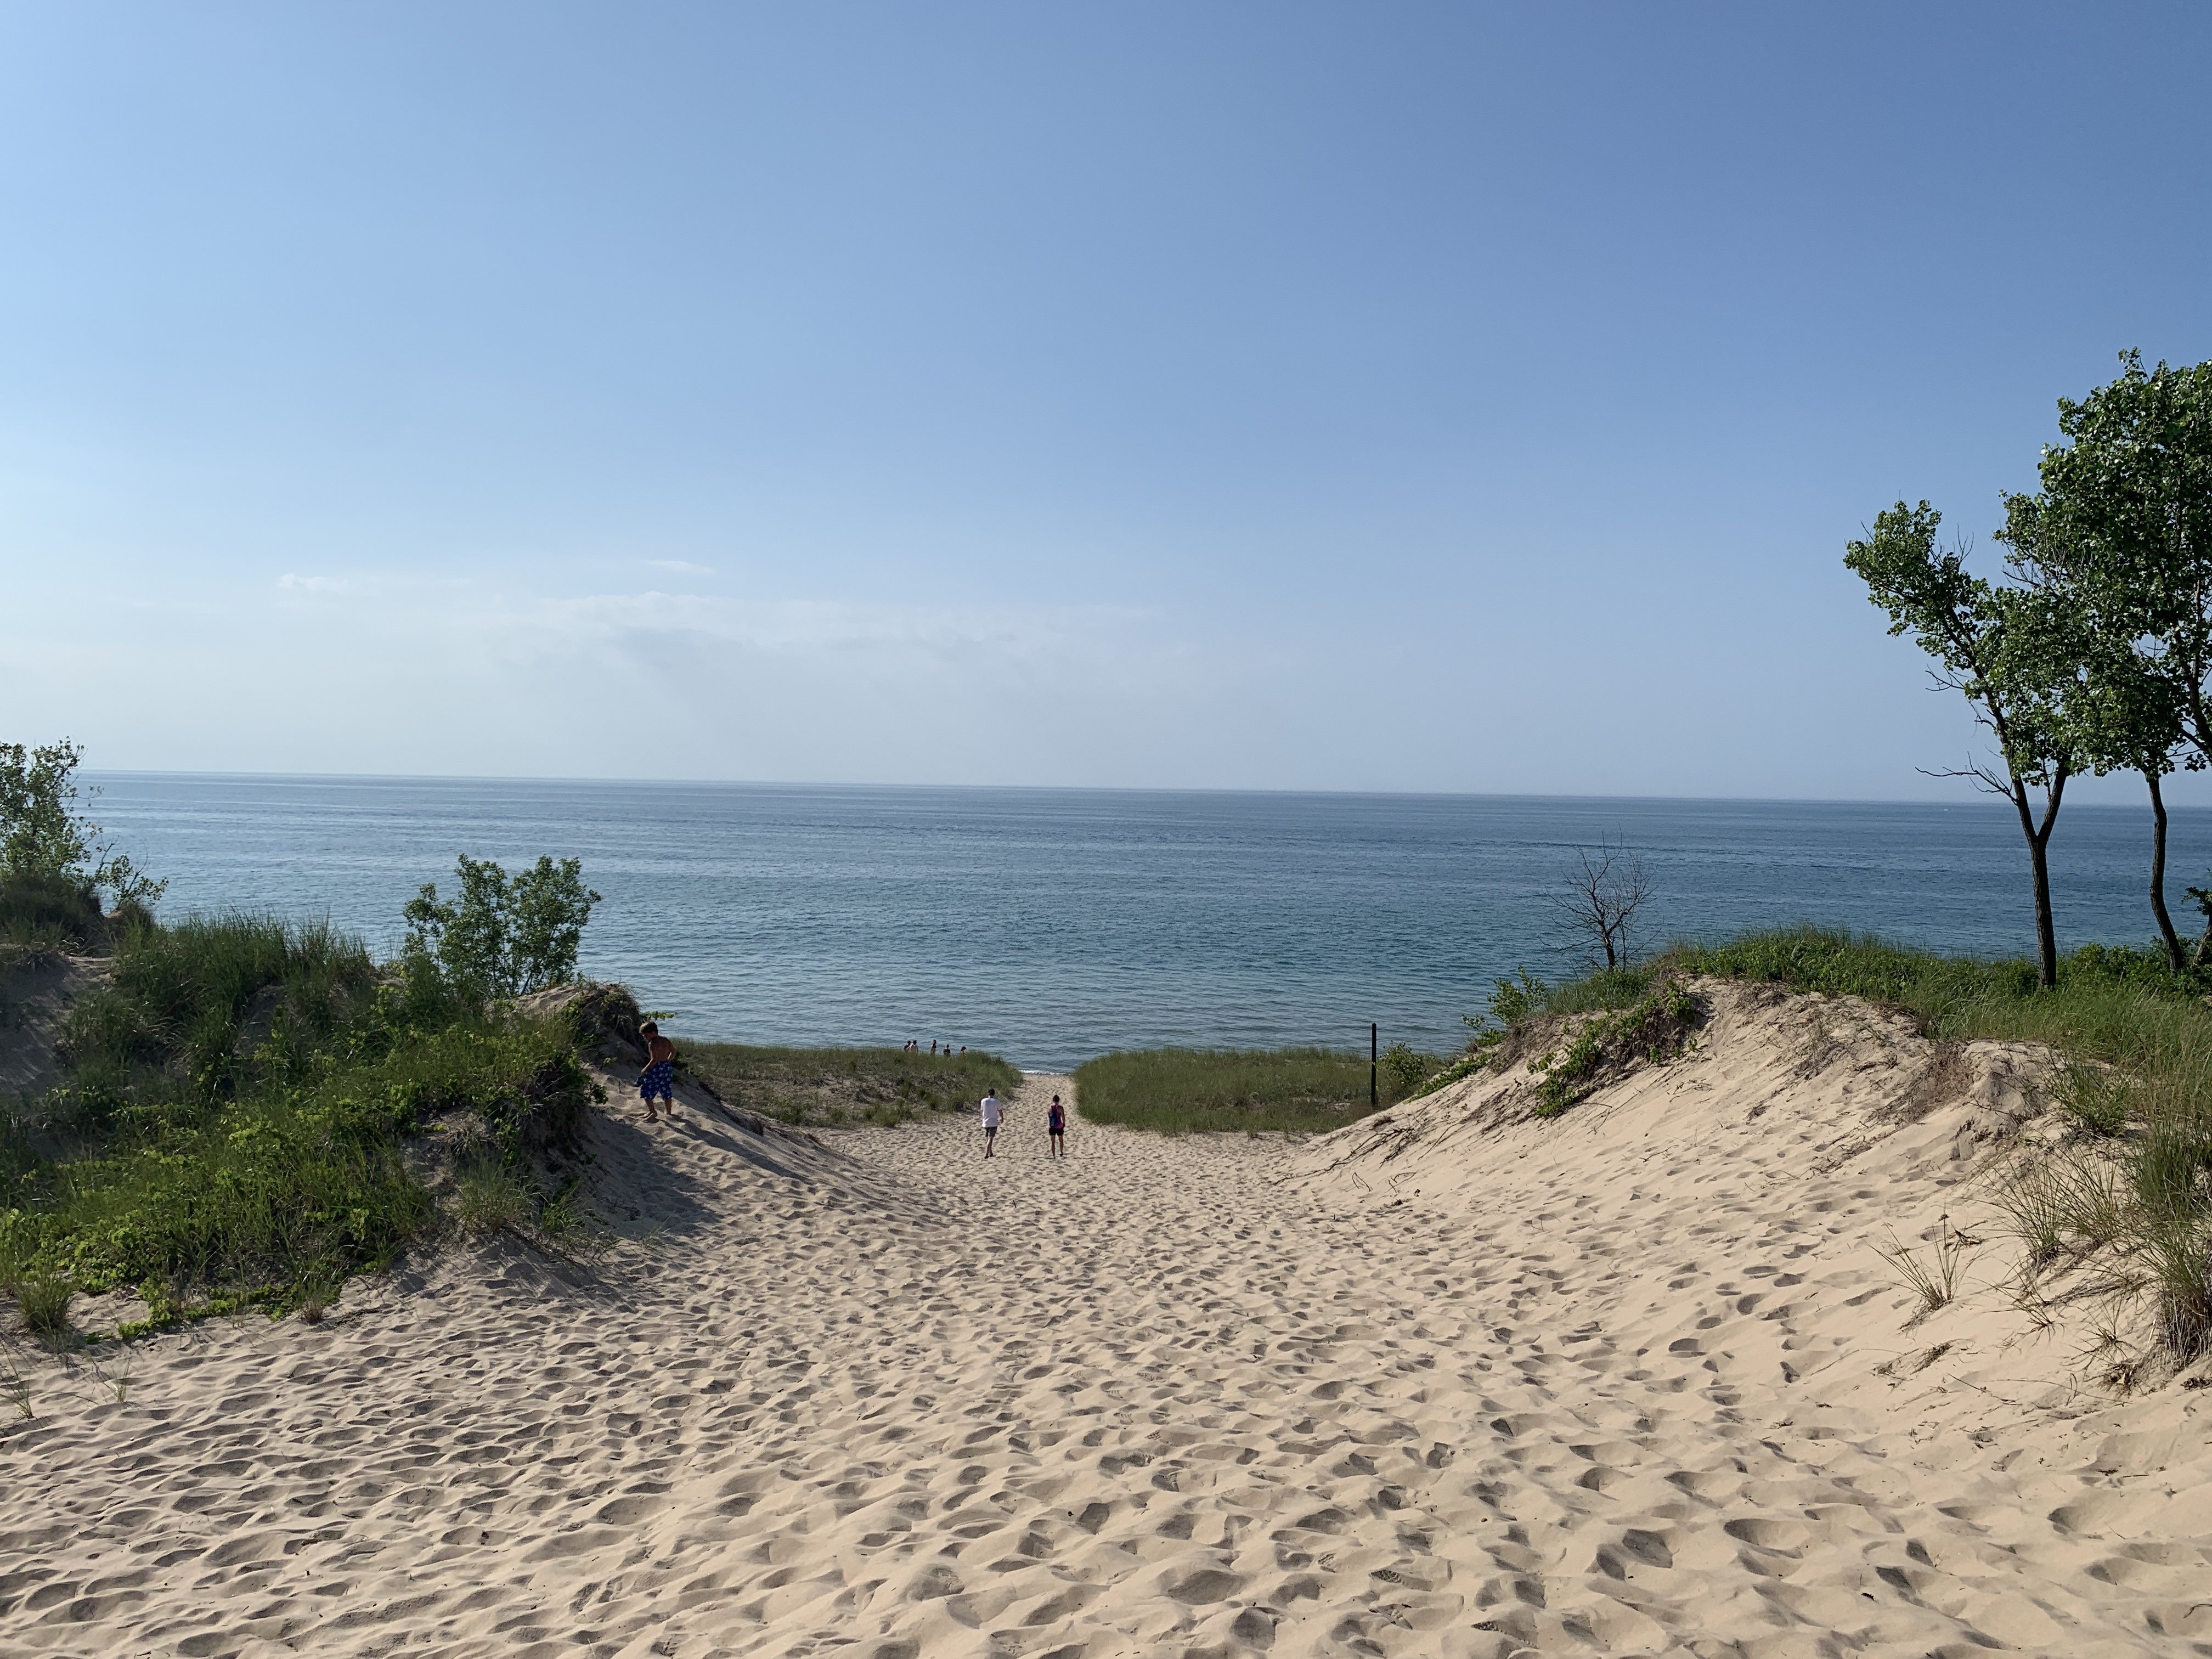 View from the top of a sand dune at Indiana Dunes National Park